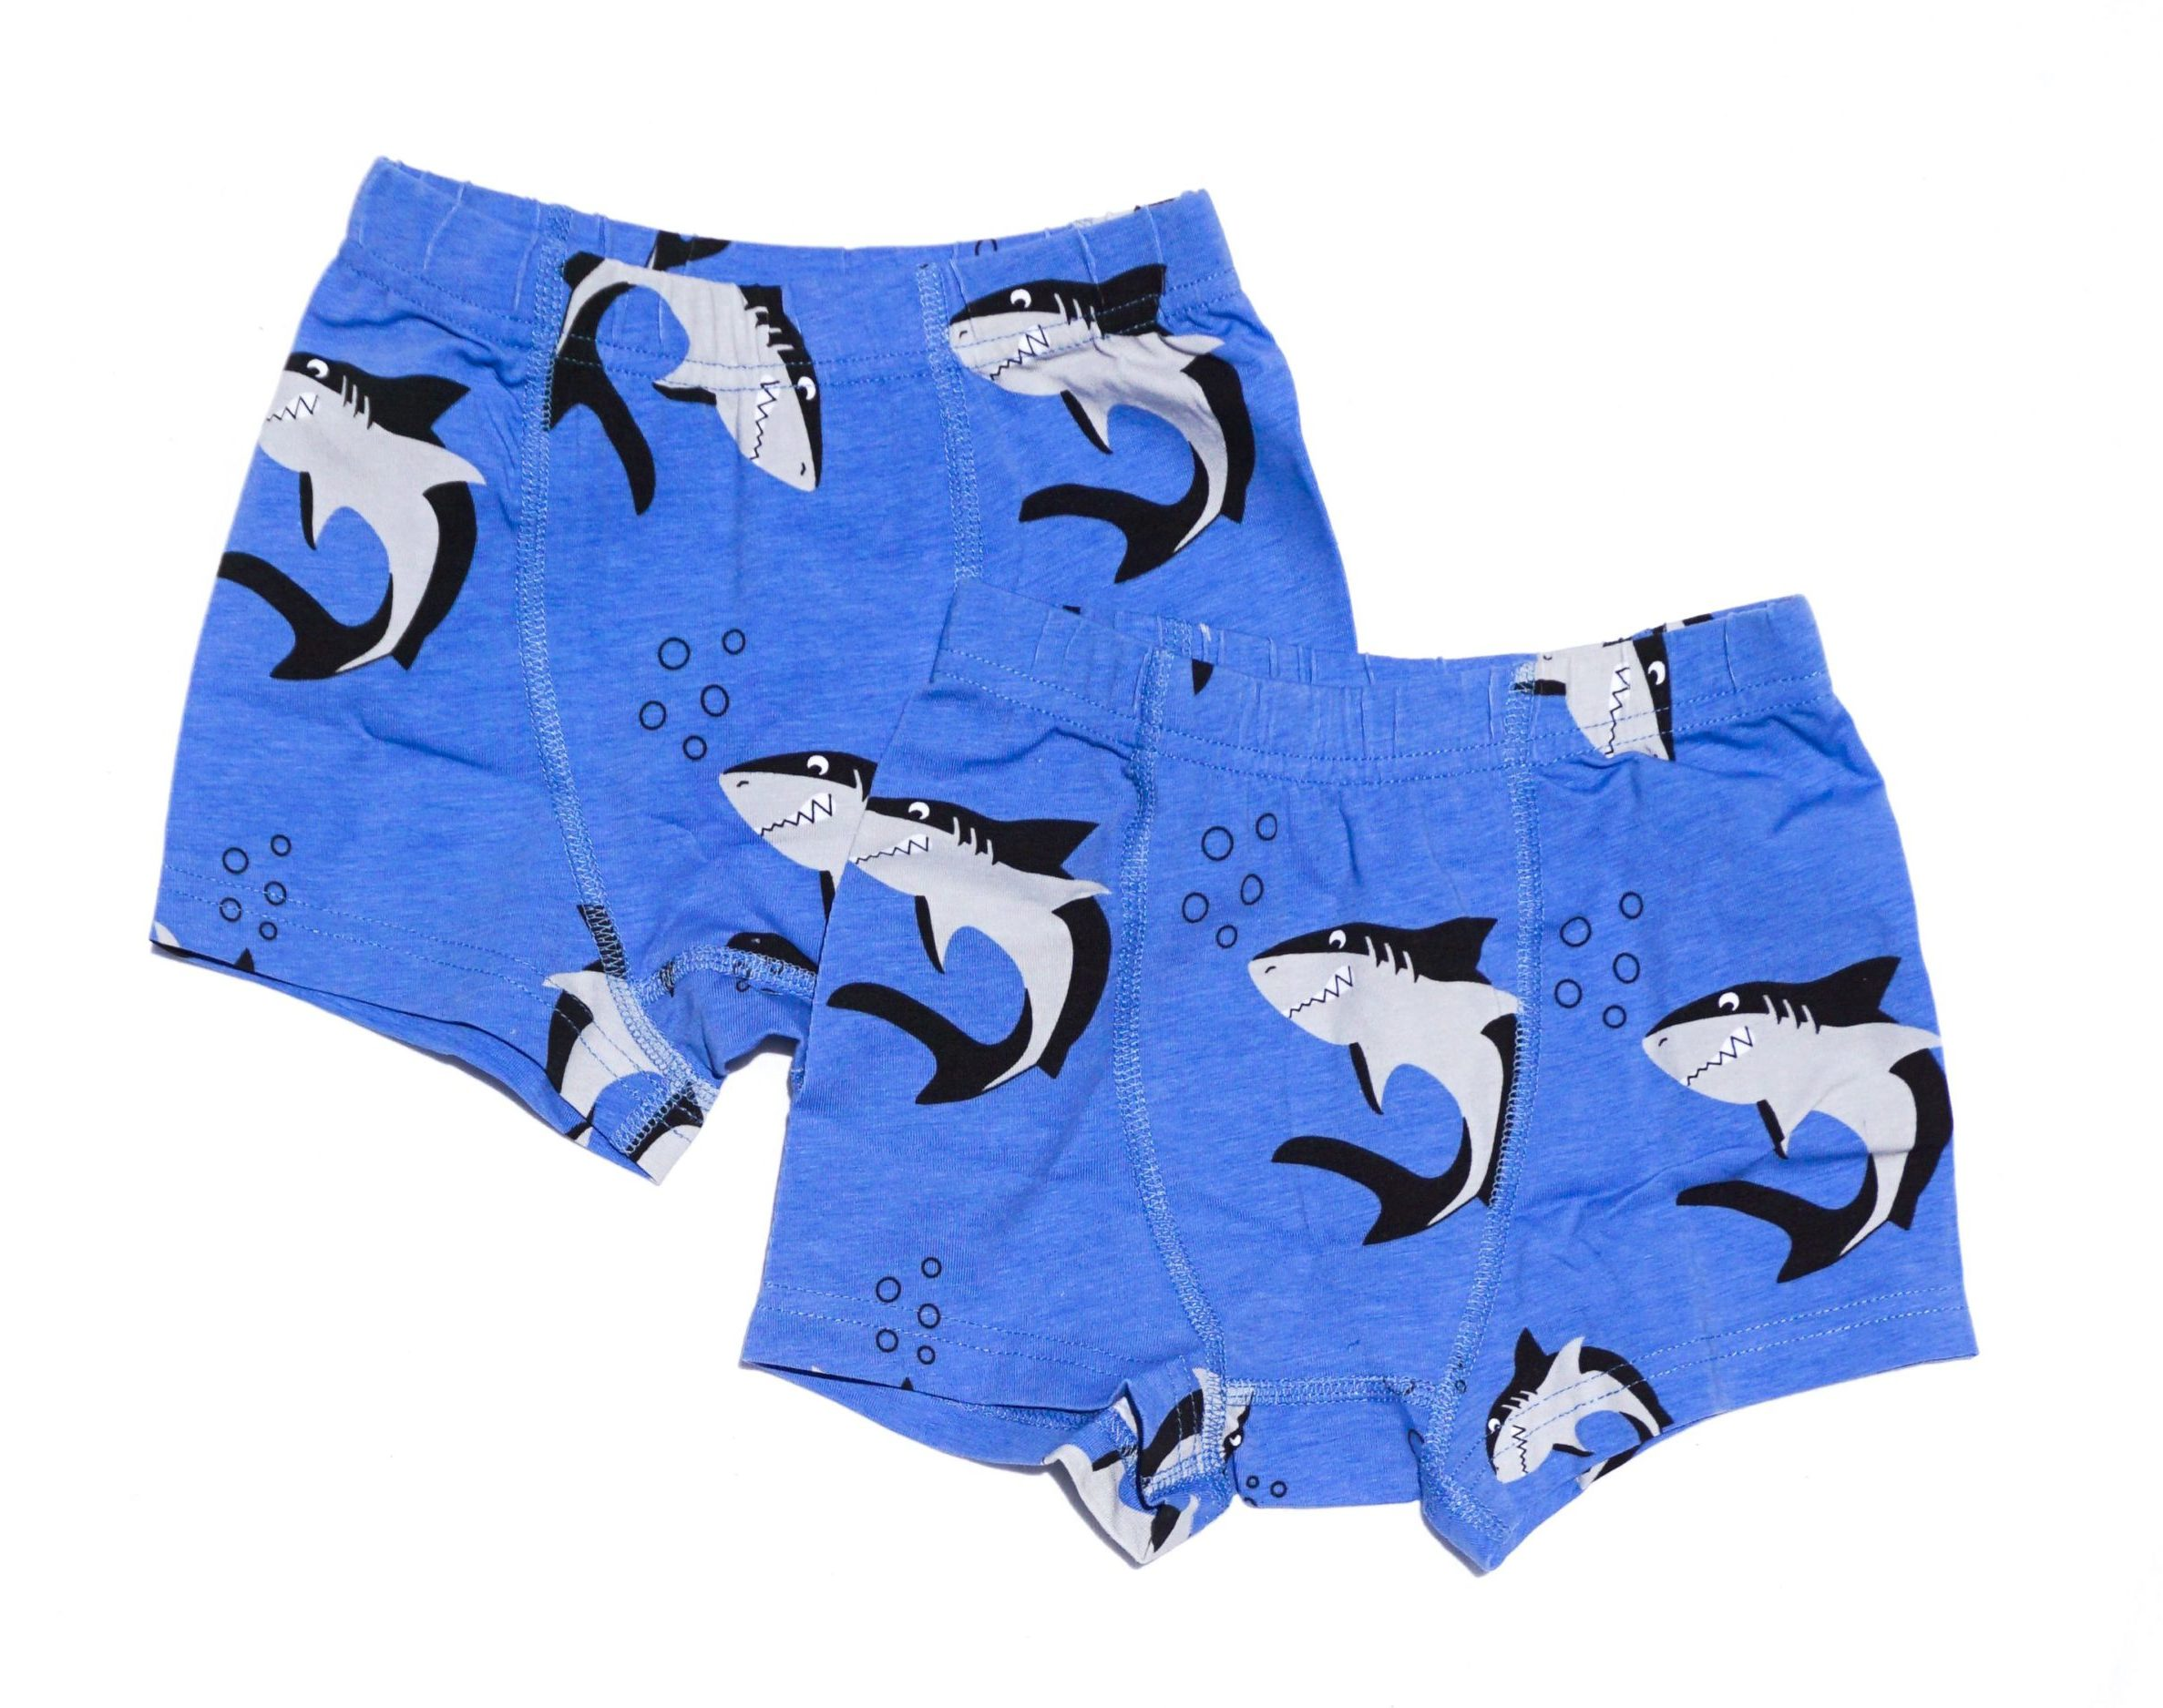 JNY 2-pack boxers Larry the Shark